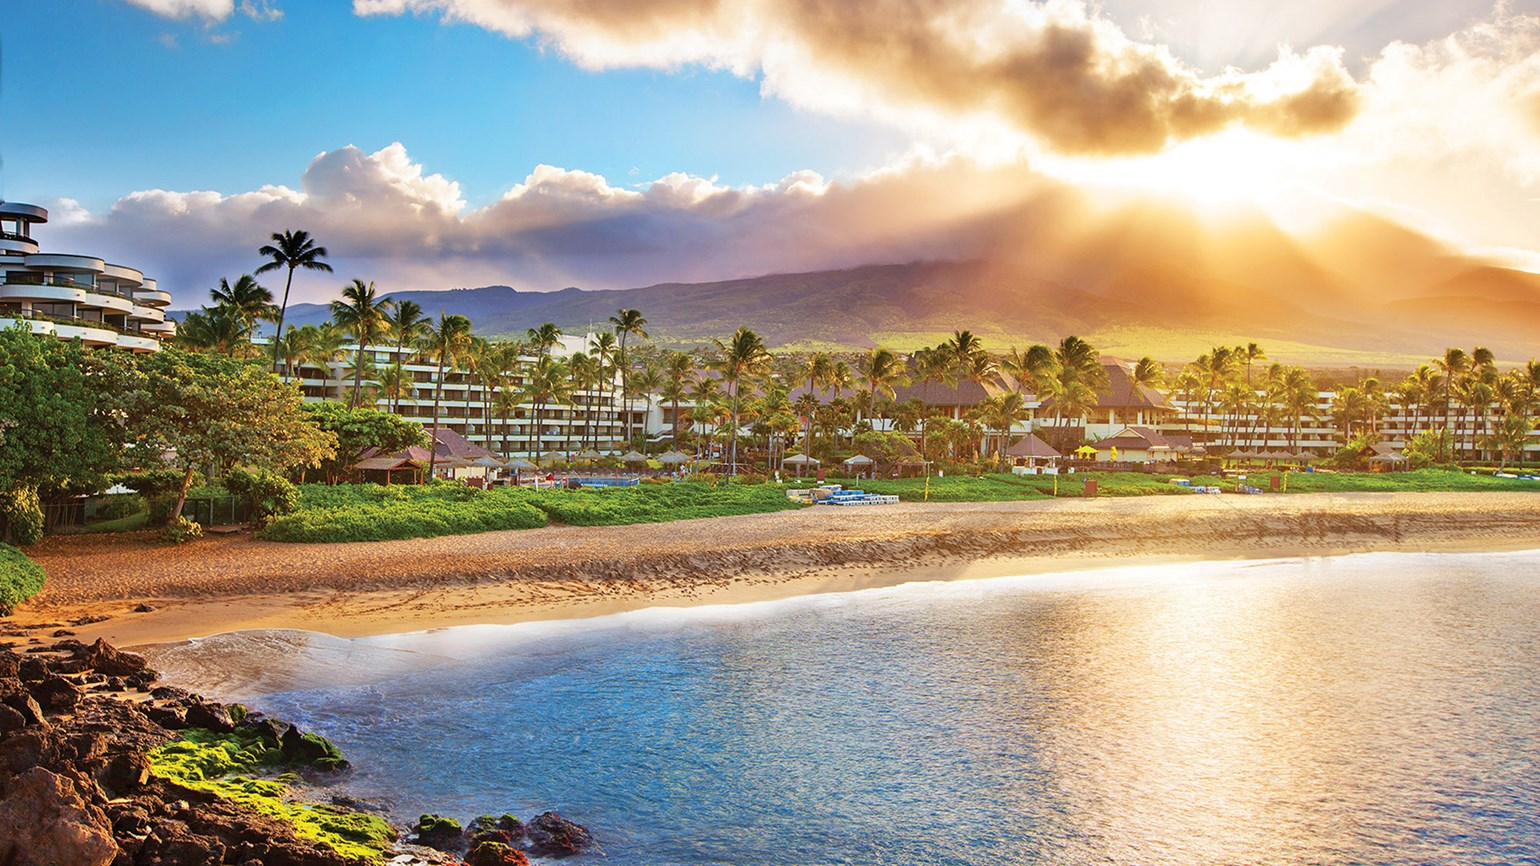 Classic views, fresh look at Sheraton Maui